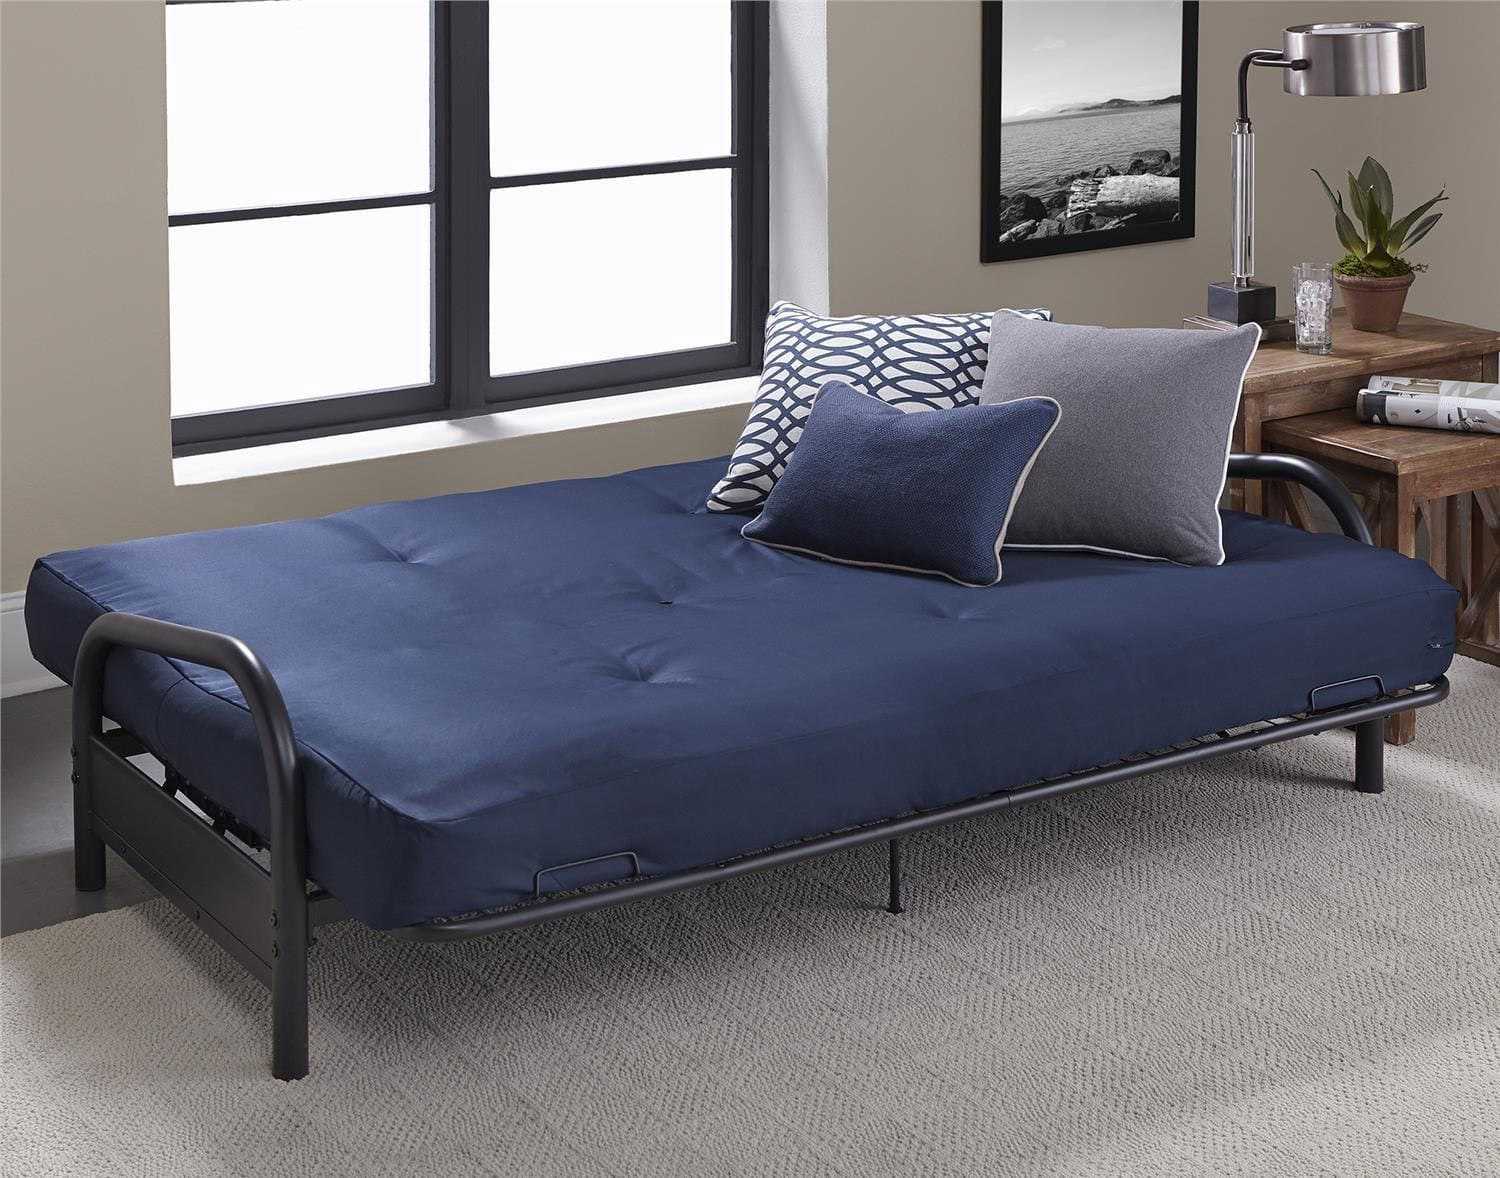 Very Versatile Twin Size Futon Mattress